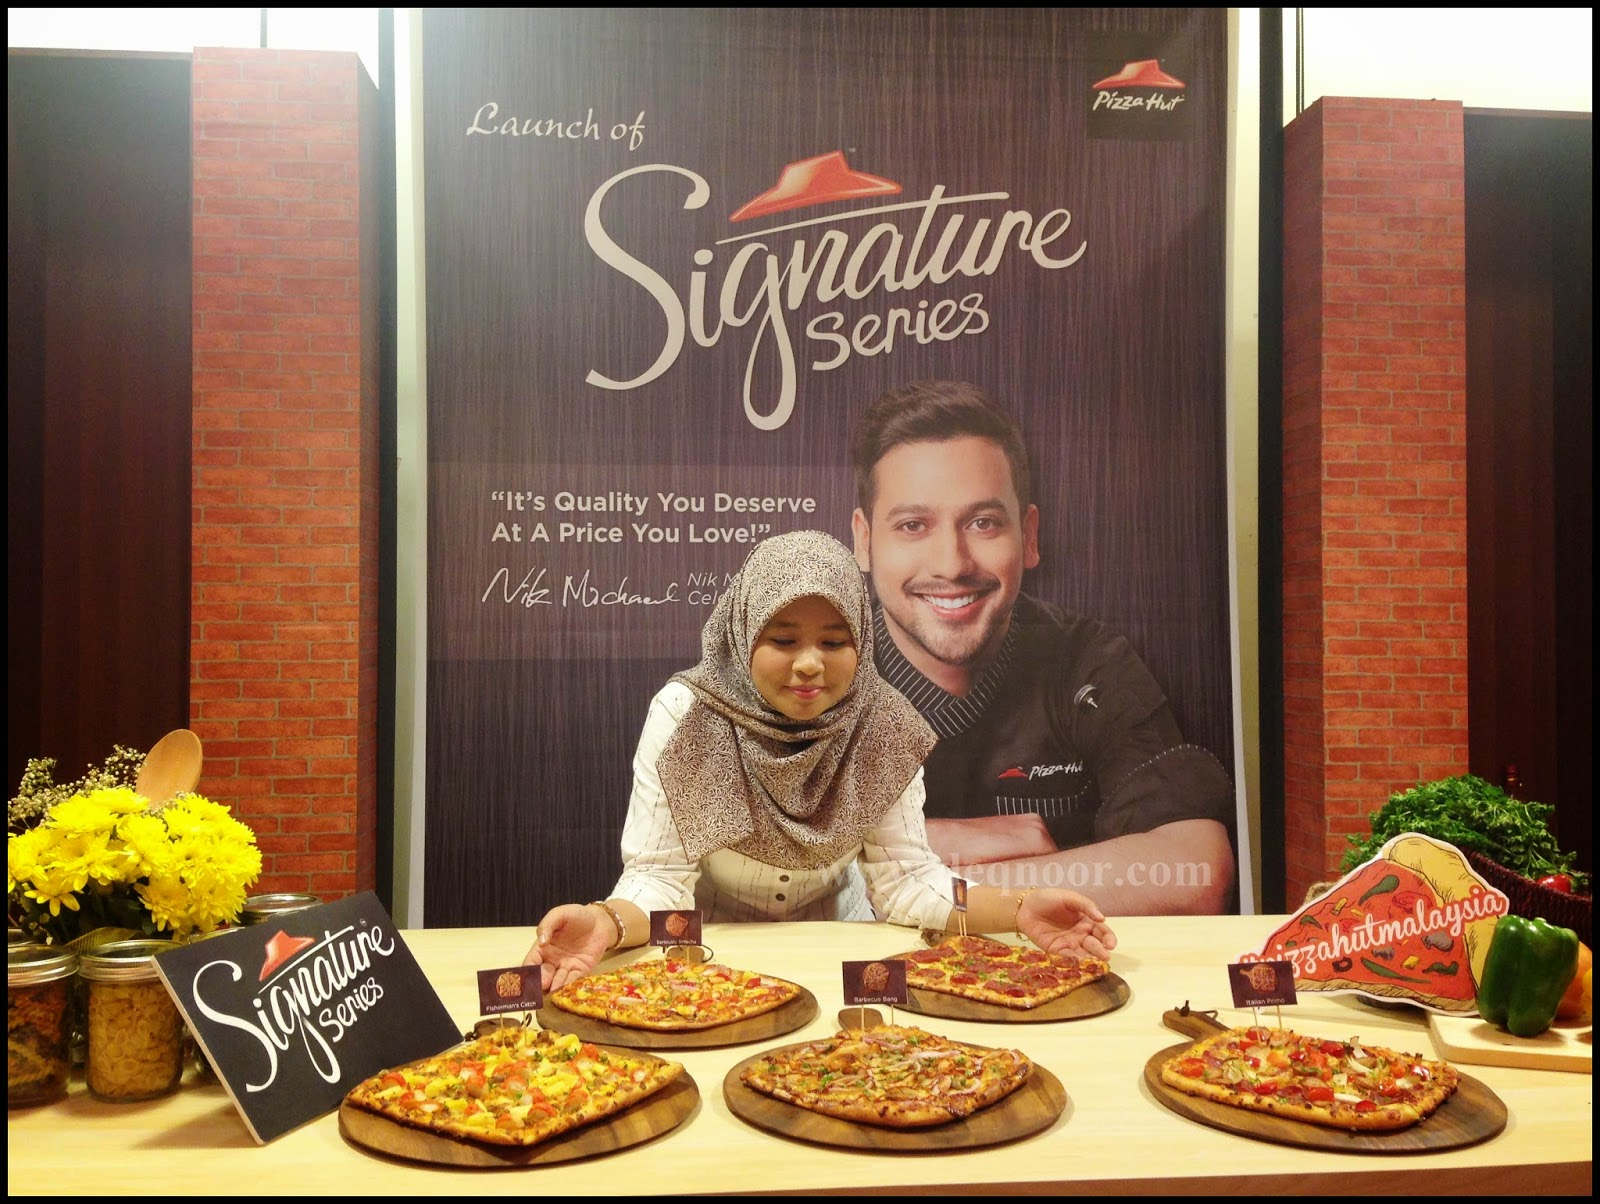 Launch of Signature Series Pizza Hut